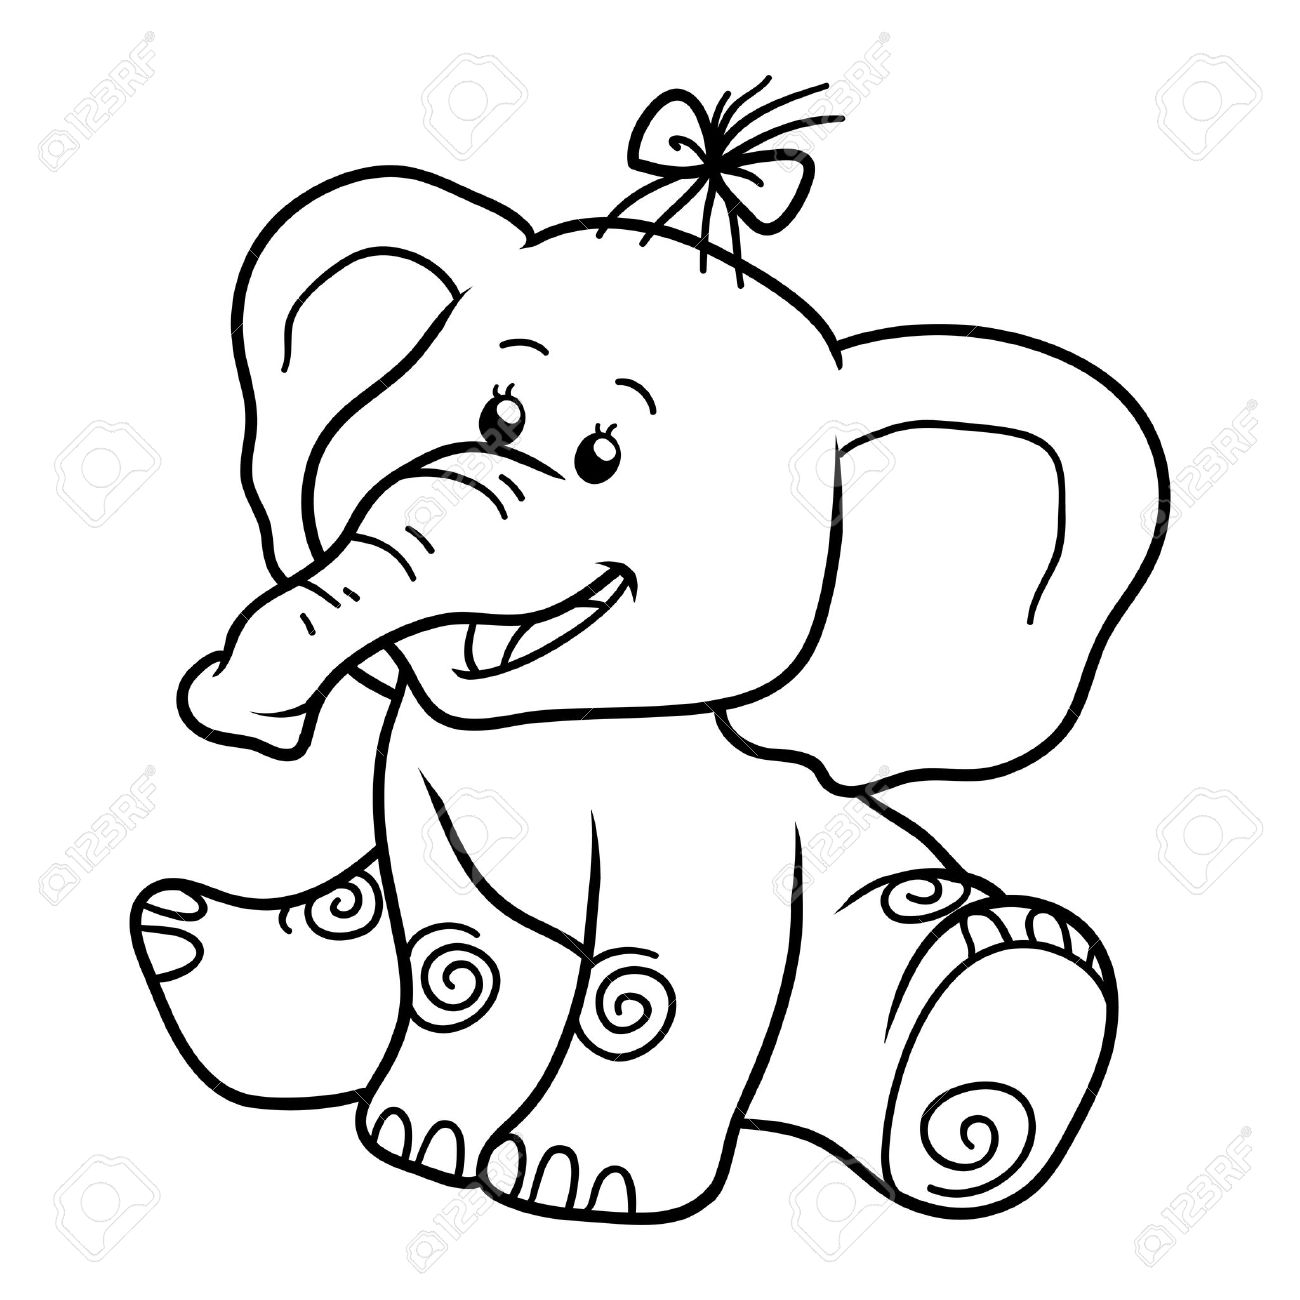 Coloring Book For Children, Education Game: Elephant Royalty Free ...